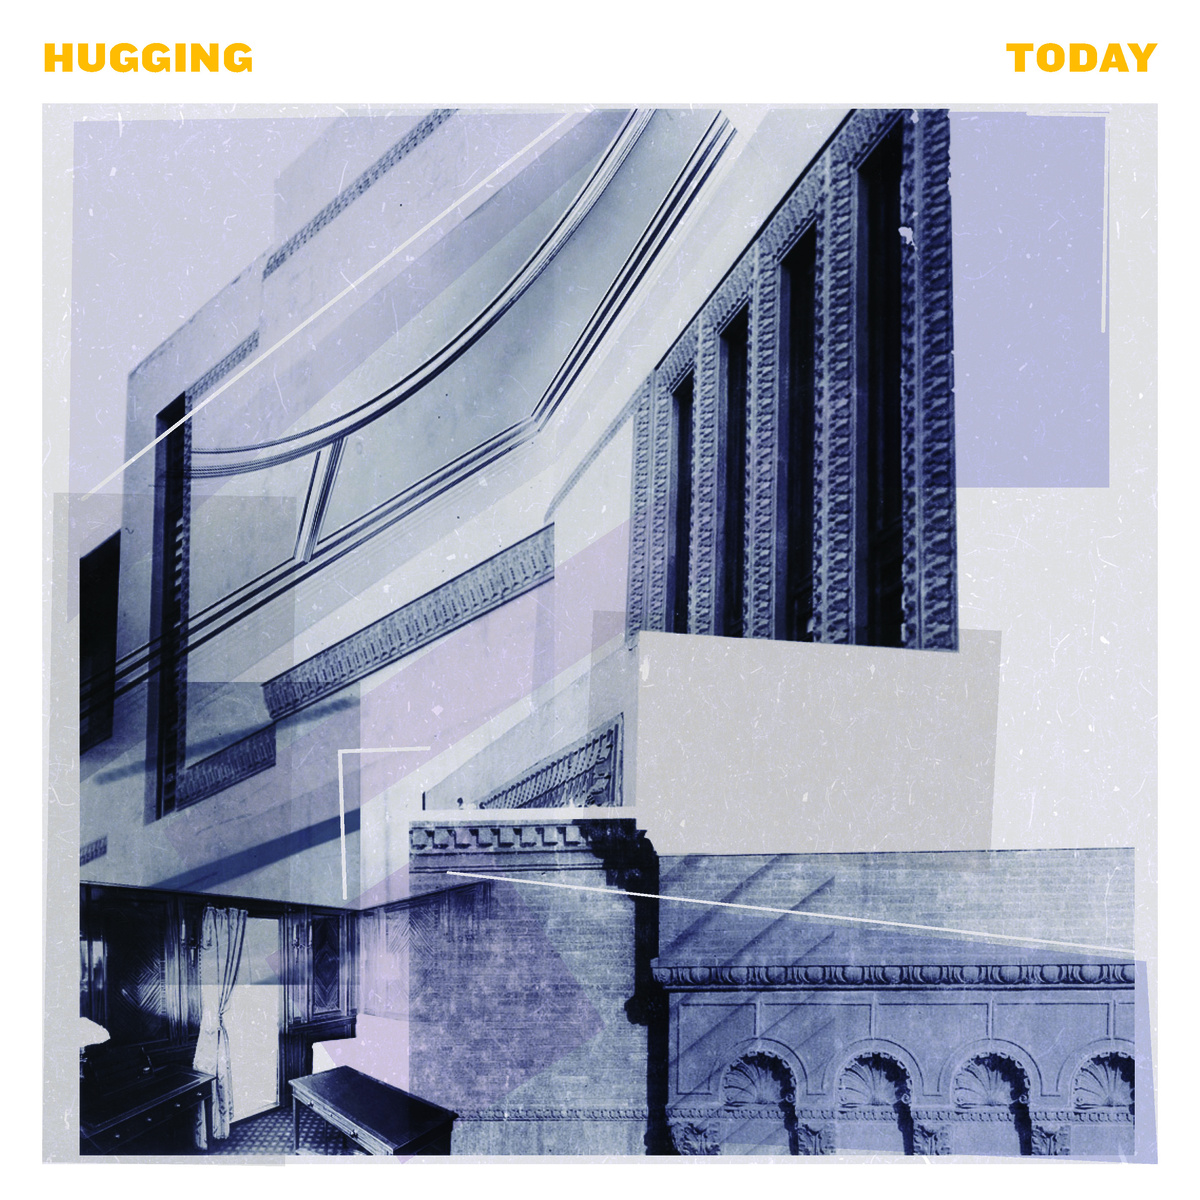 Hugging - Today